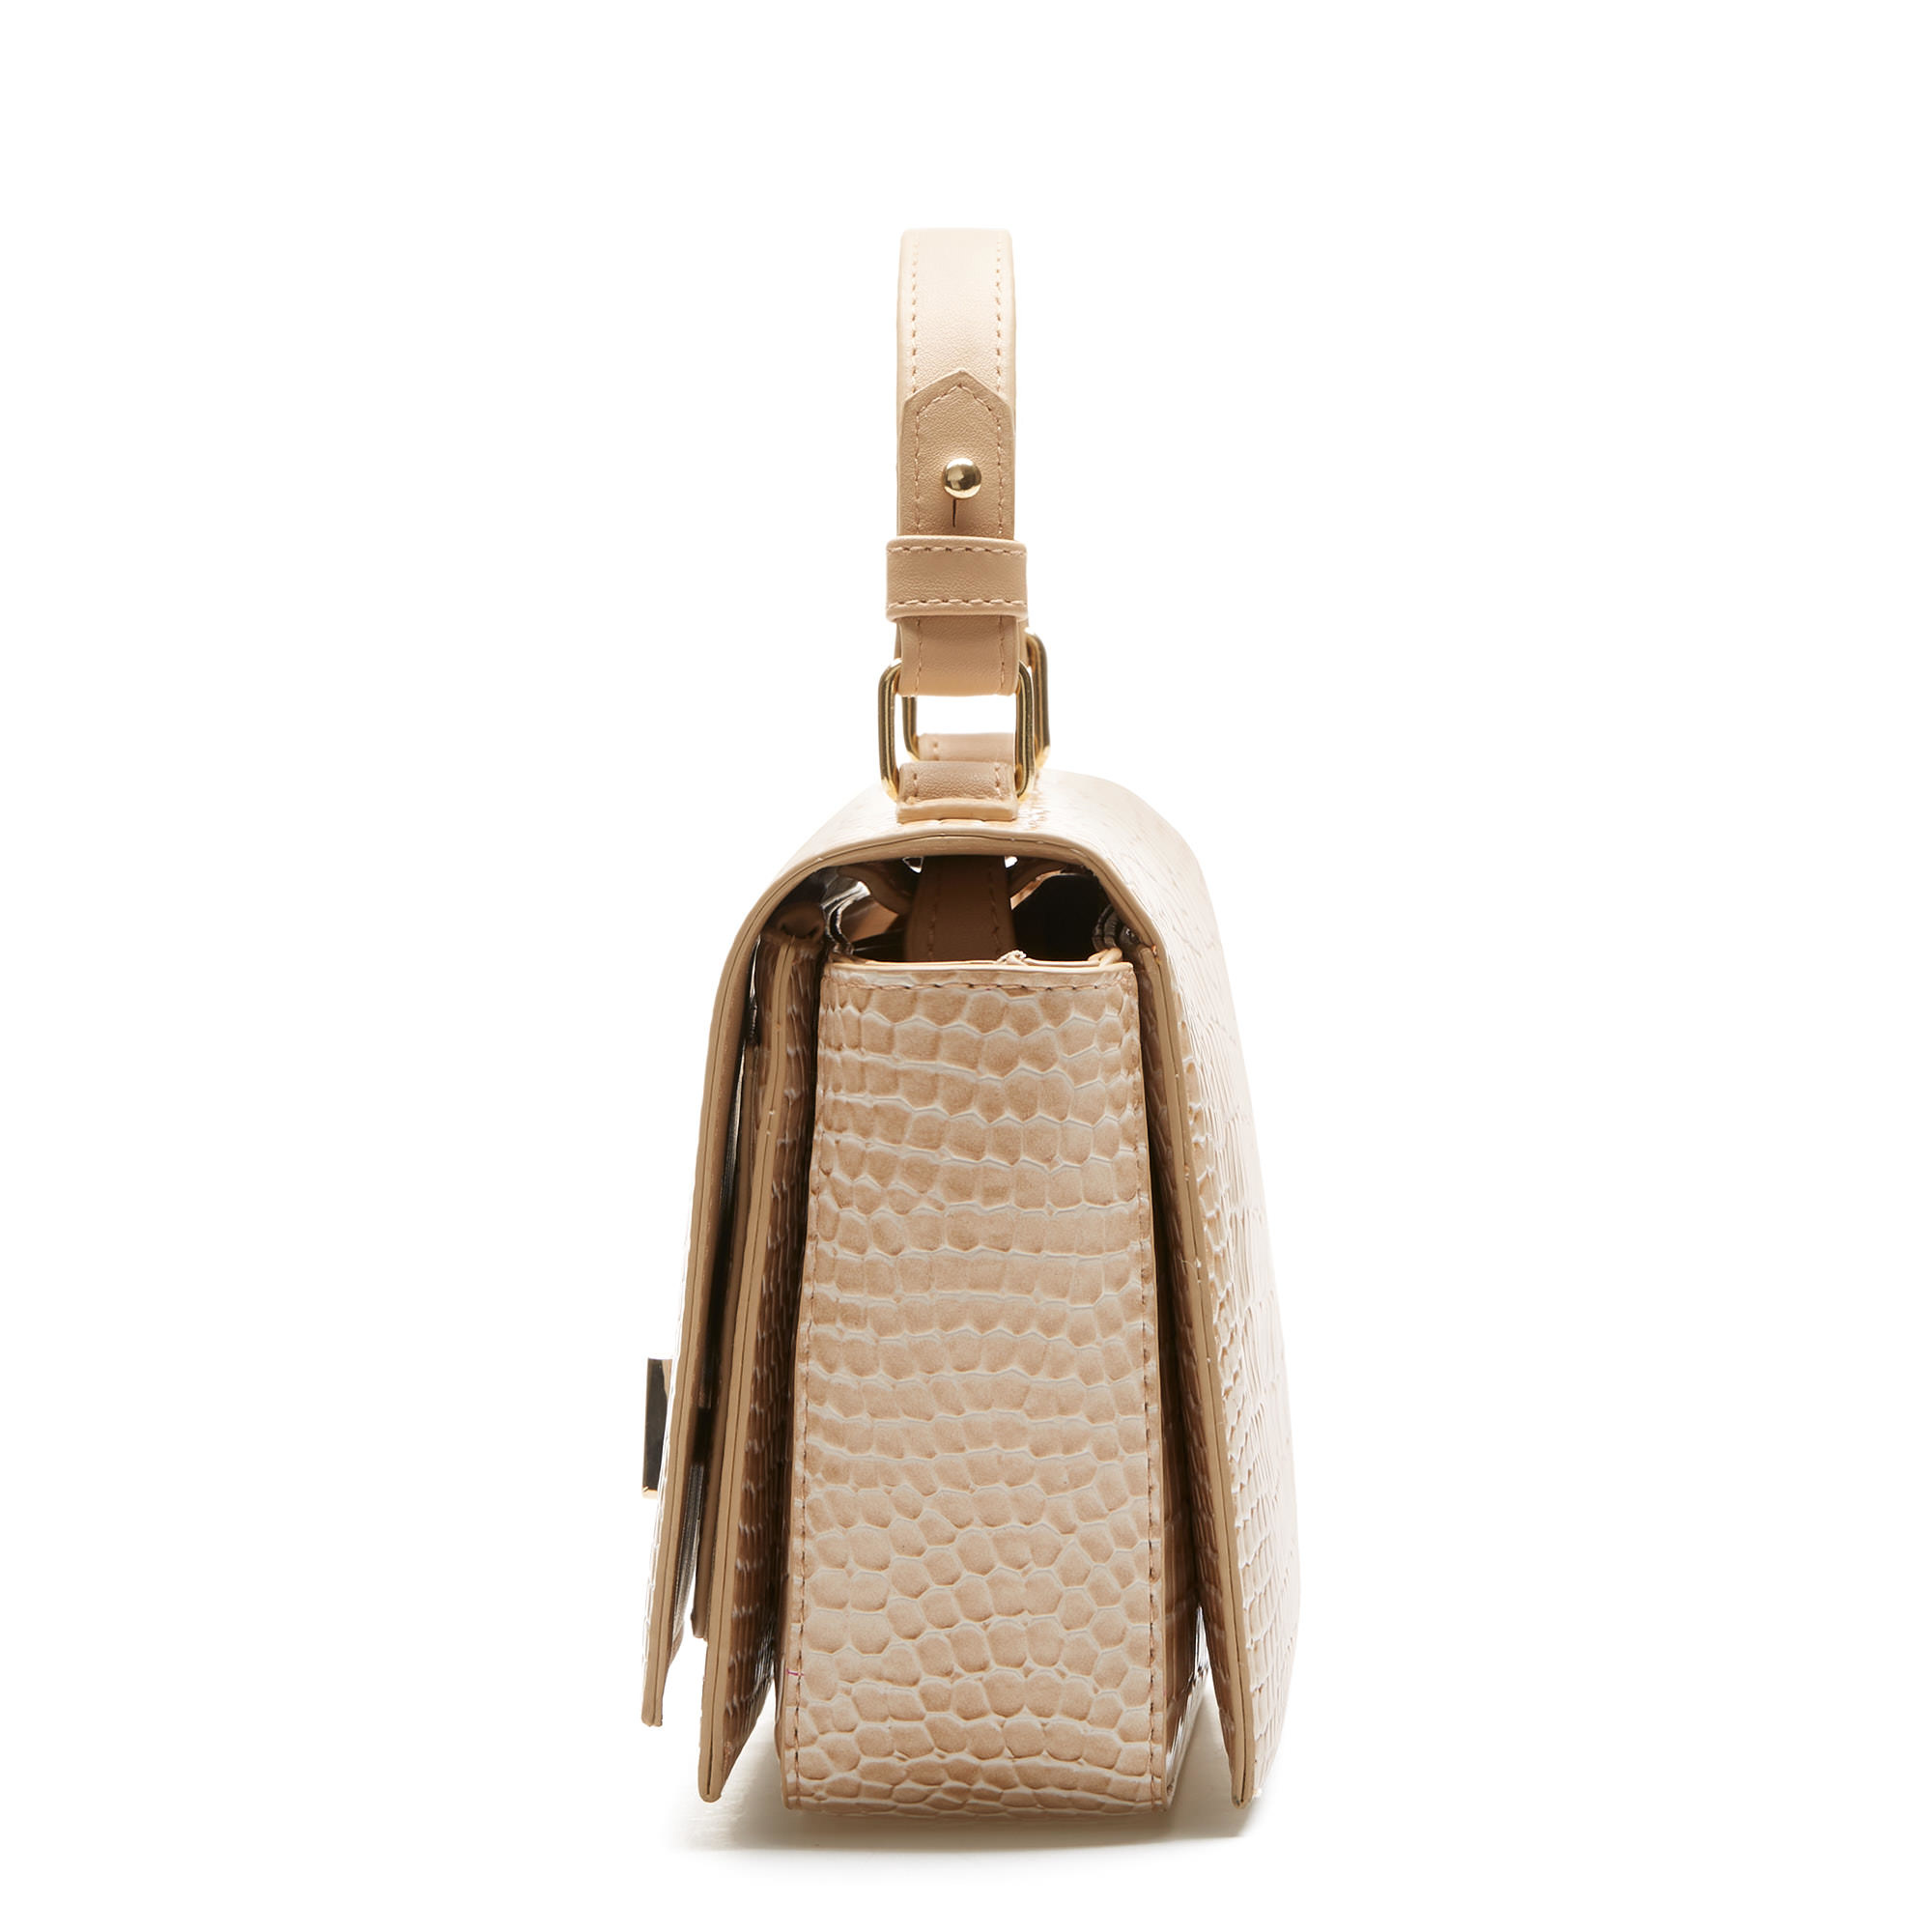 Violet Hamden Evening Star croco beige crossbody